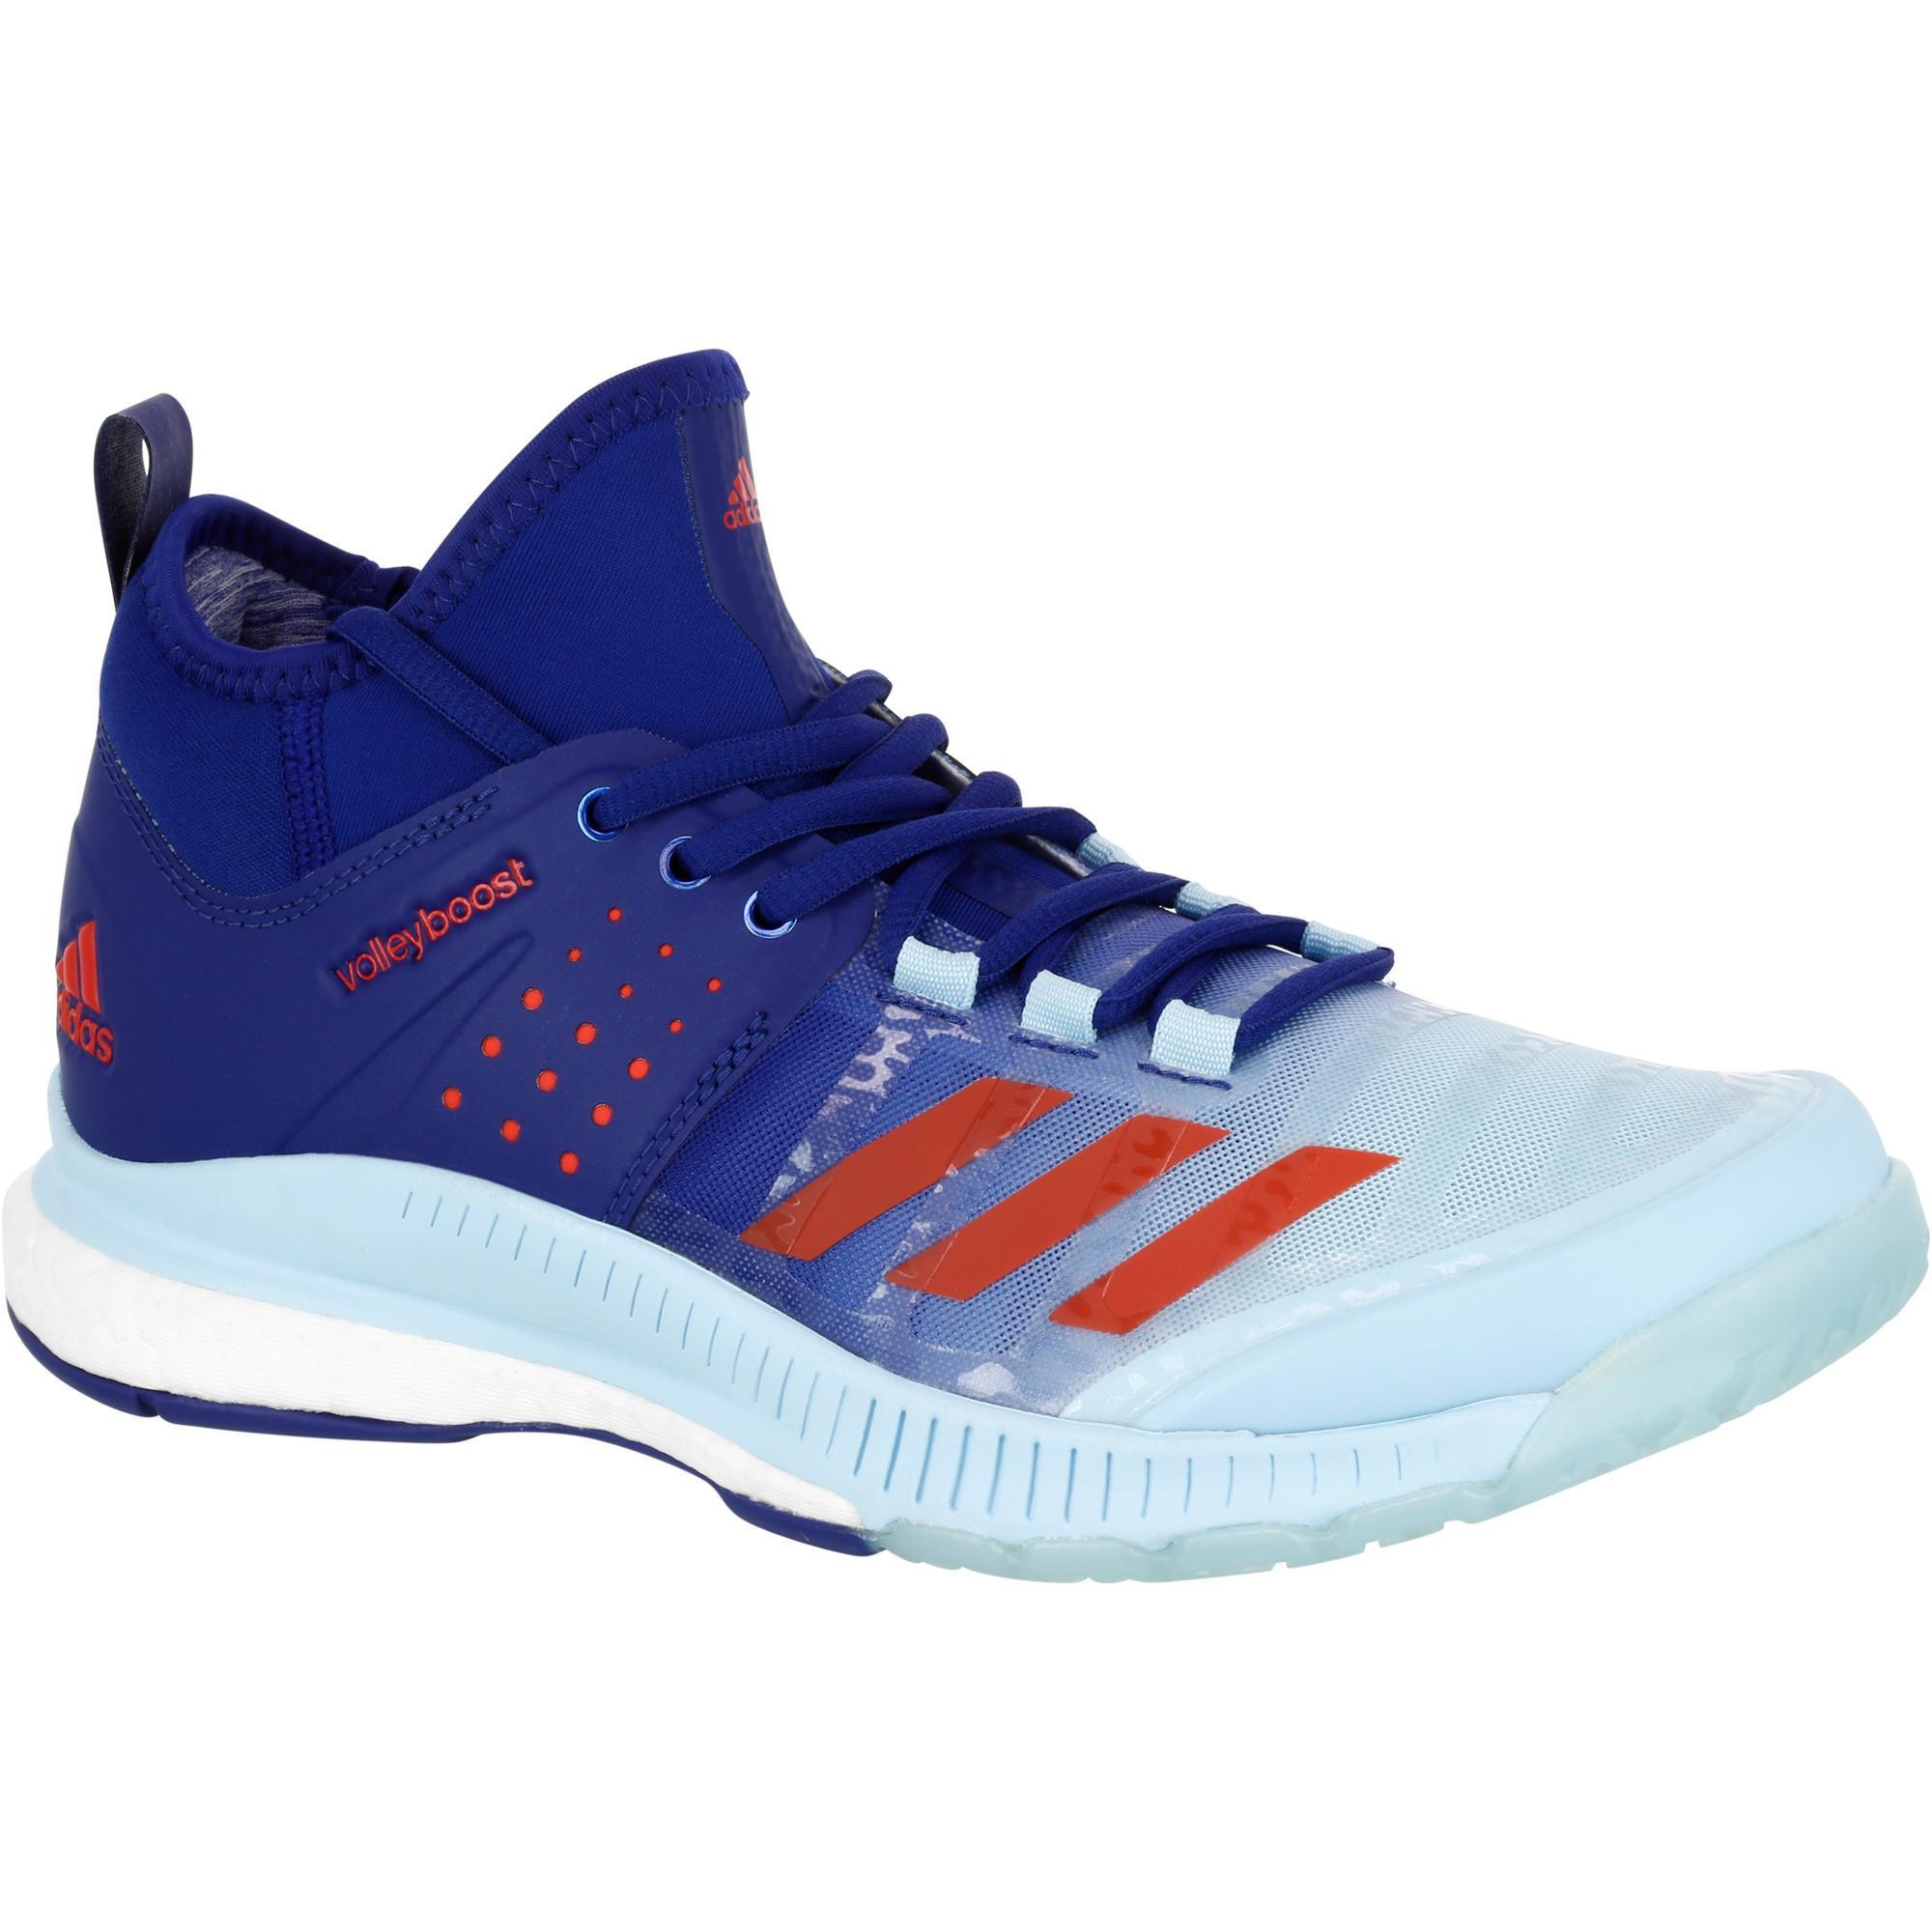 Volleyballschuhe Boost Crazyflight Damen blau